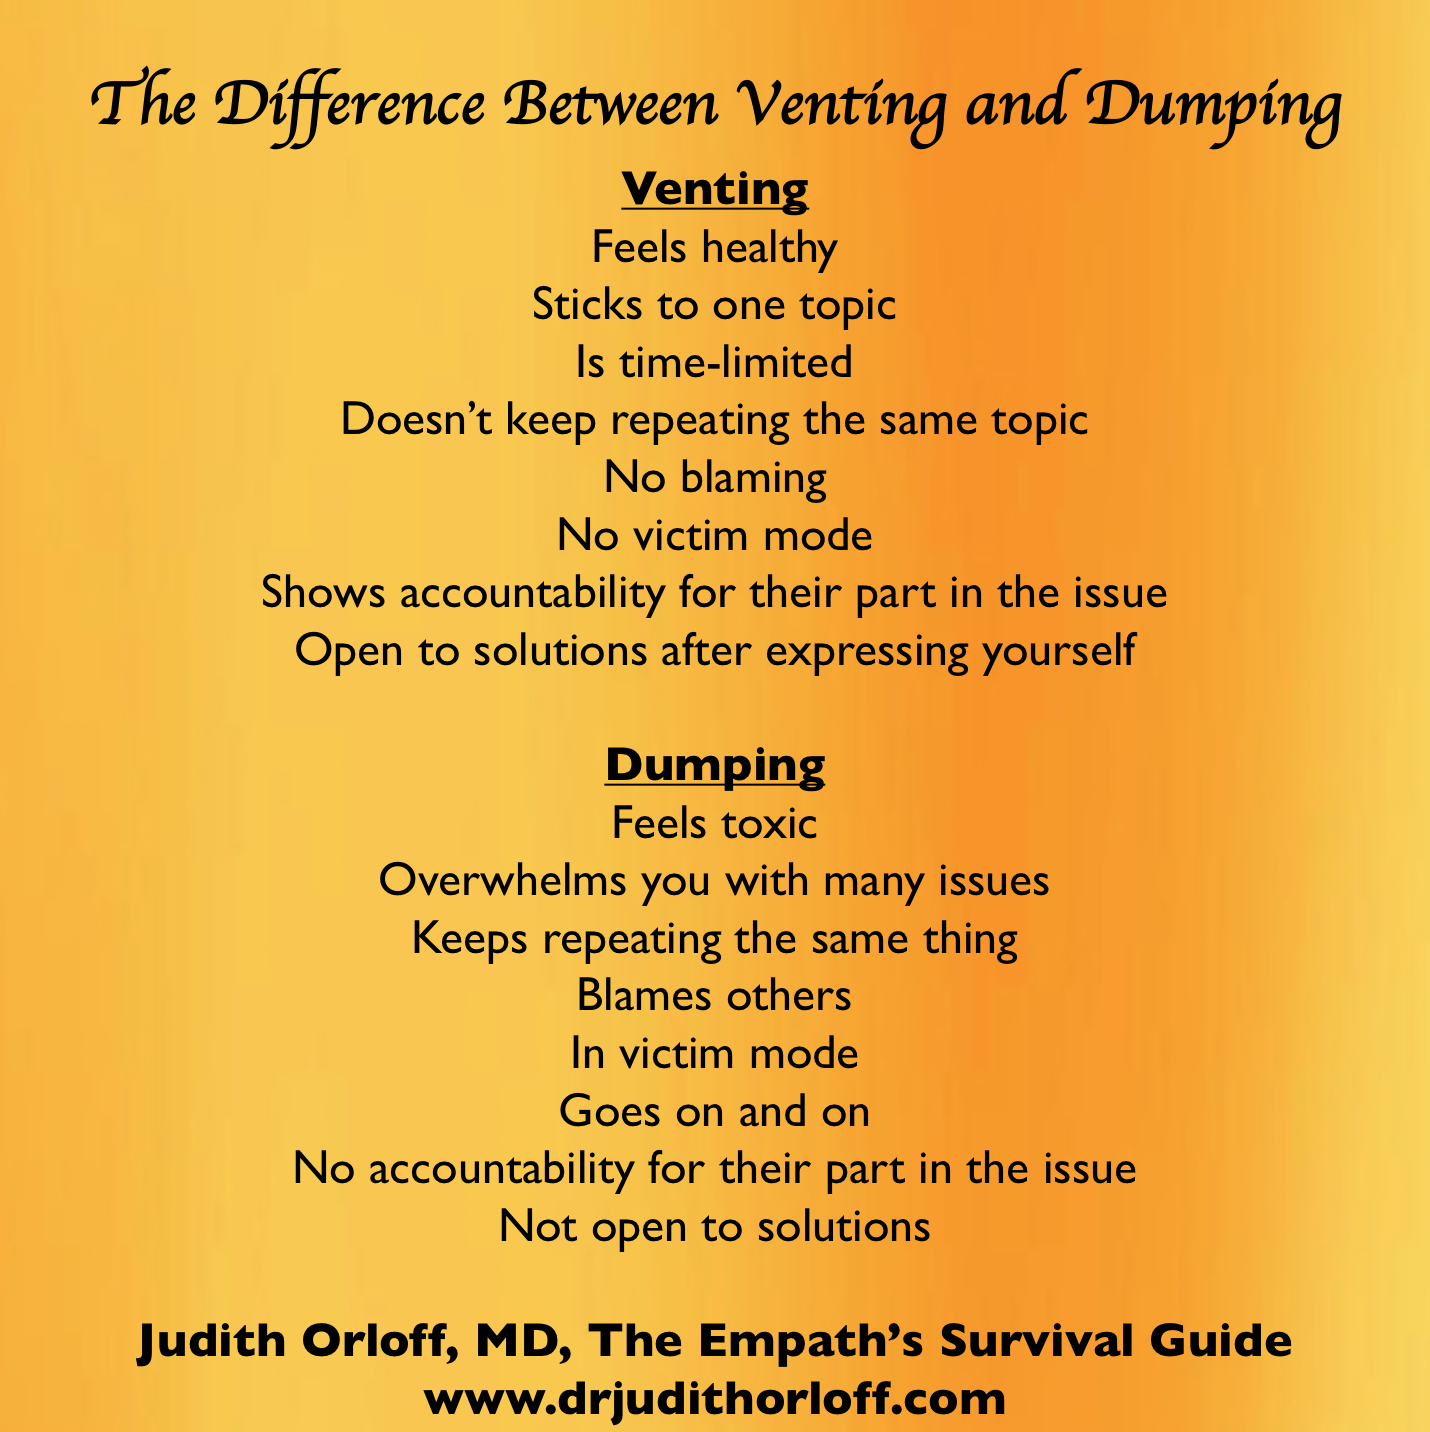 The Difference Between Venting and Dumping | Psychology Today